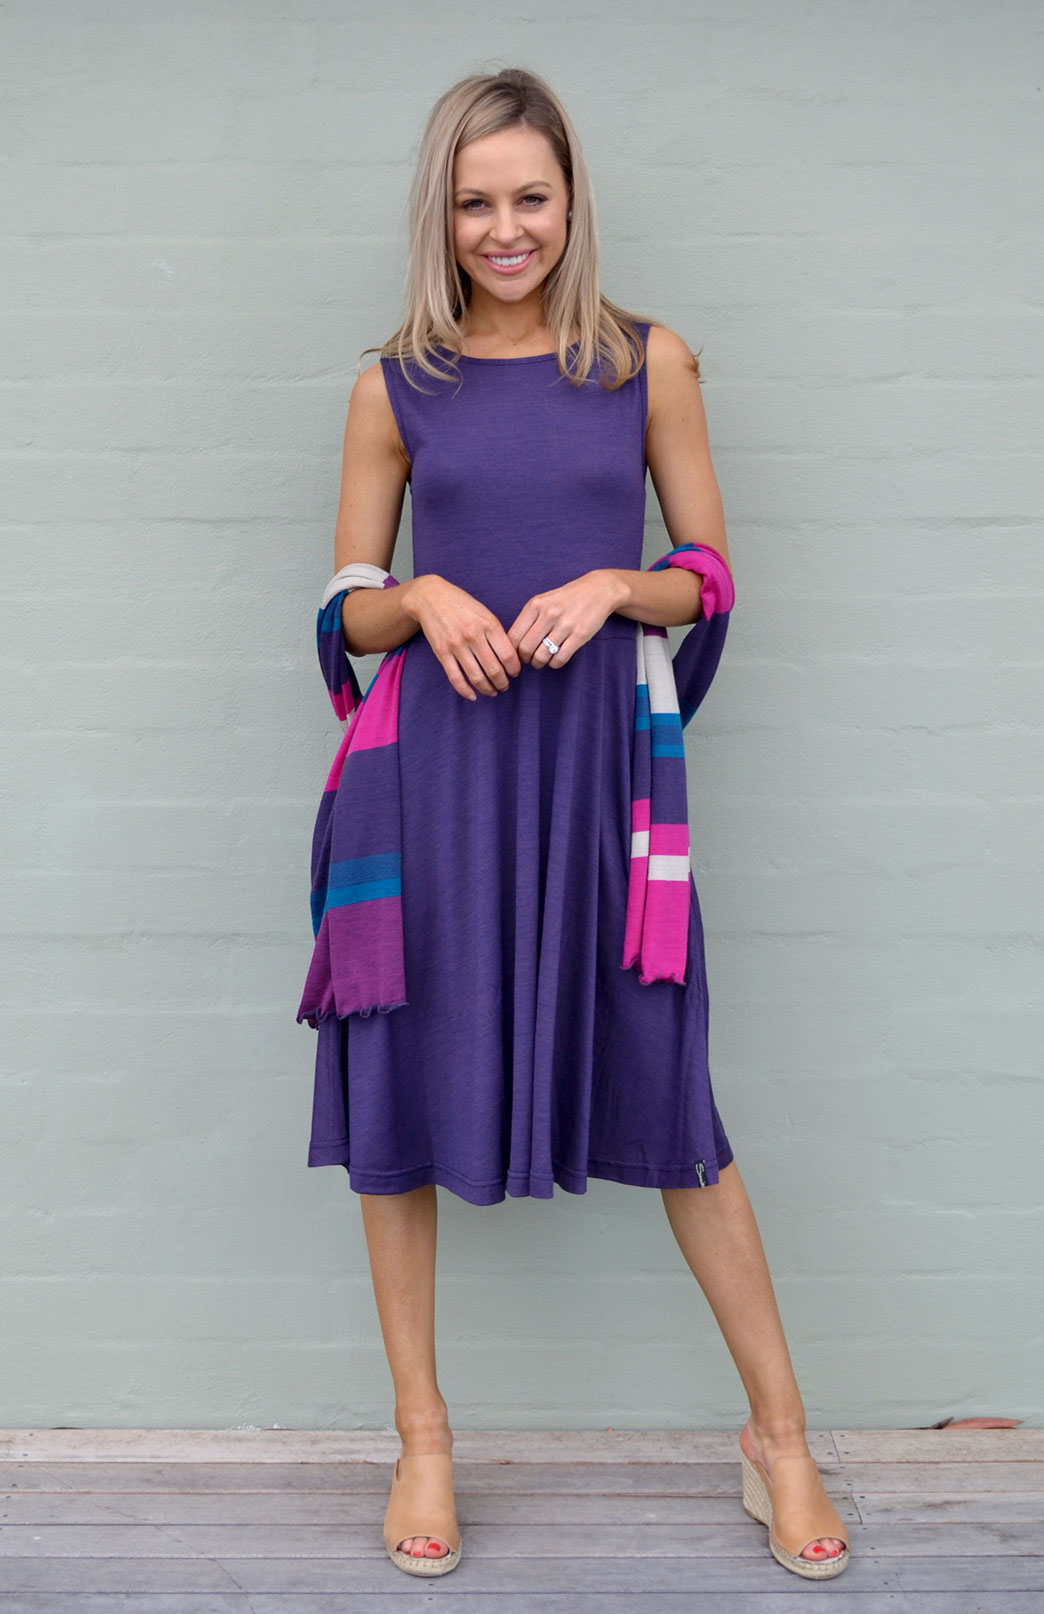 MaryAnn Fit and Flare Dress - Women's Purple Merino Wool Sleeveless Dress with Pockets - Smitten Merino Tasmania Australia